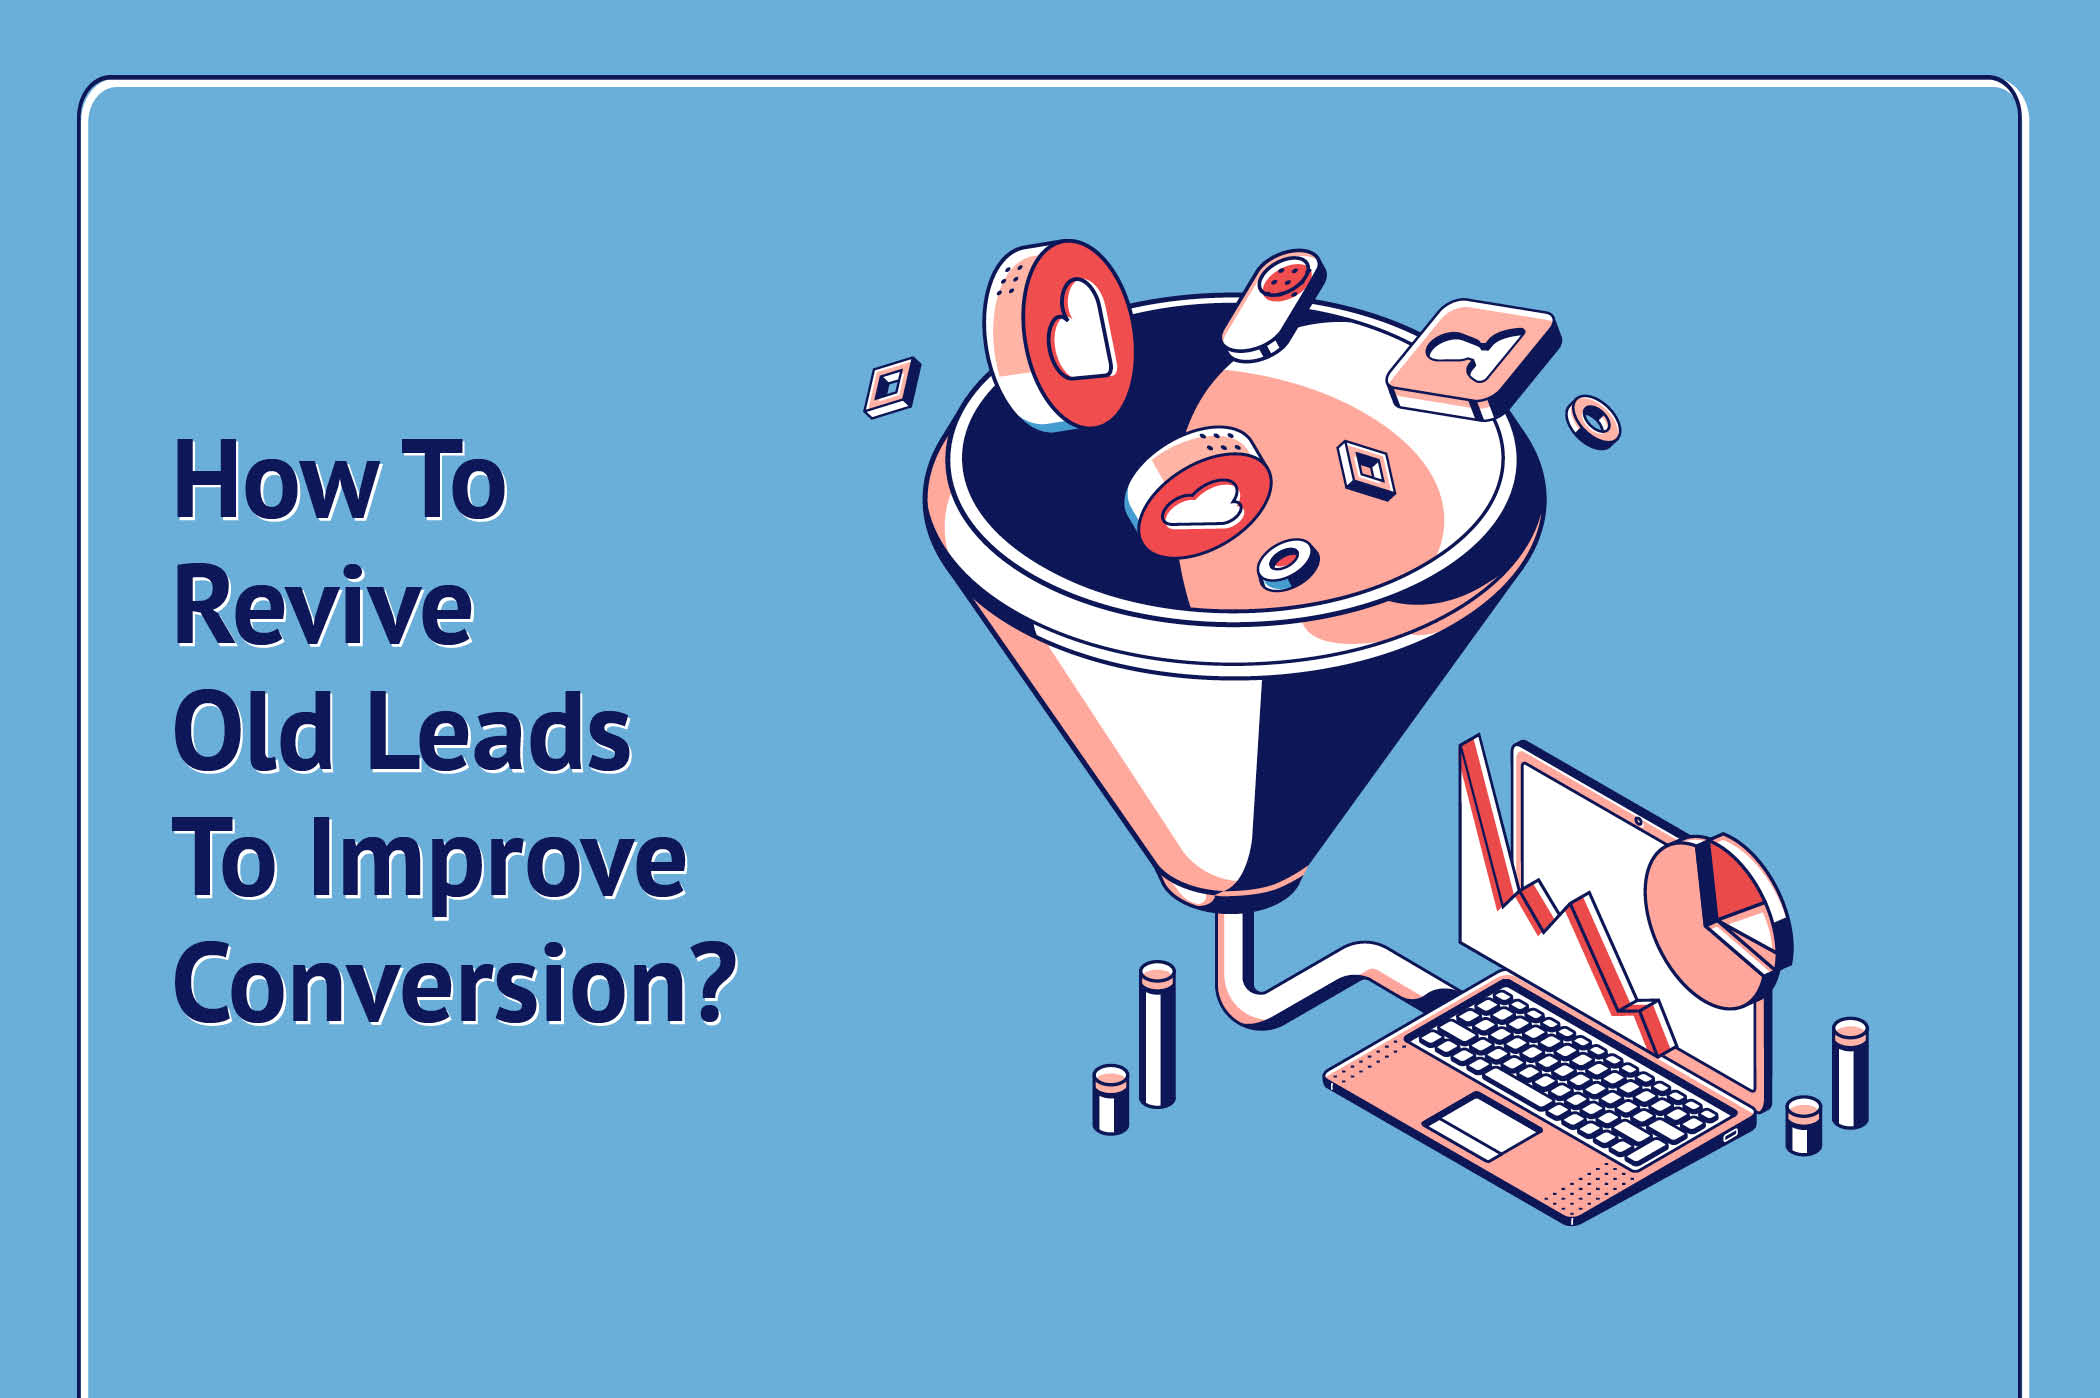 How To Revive Old Sales Leads To Improve Conversion?